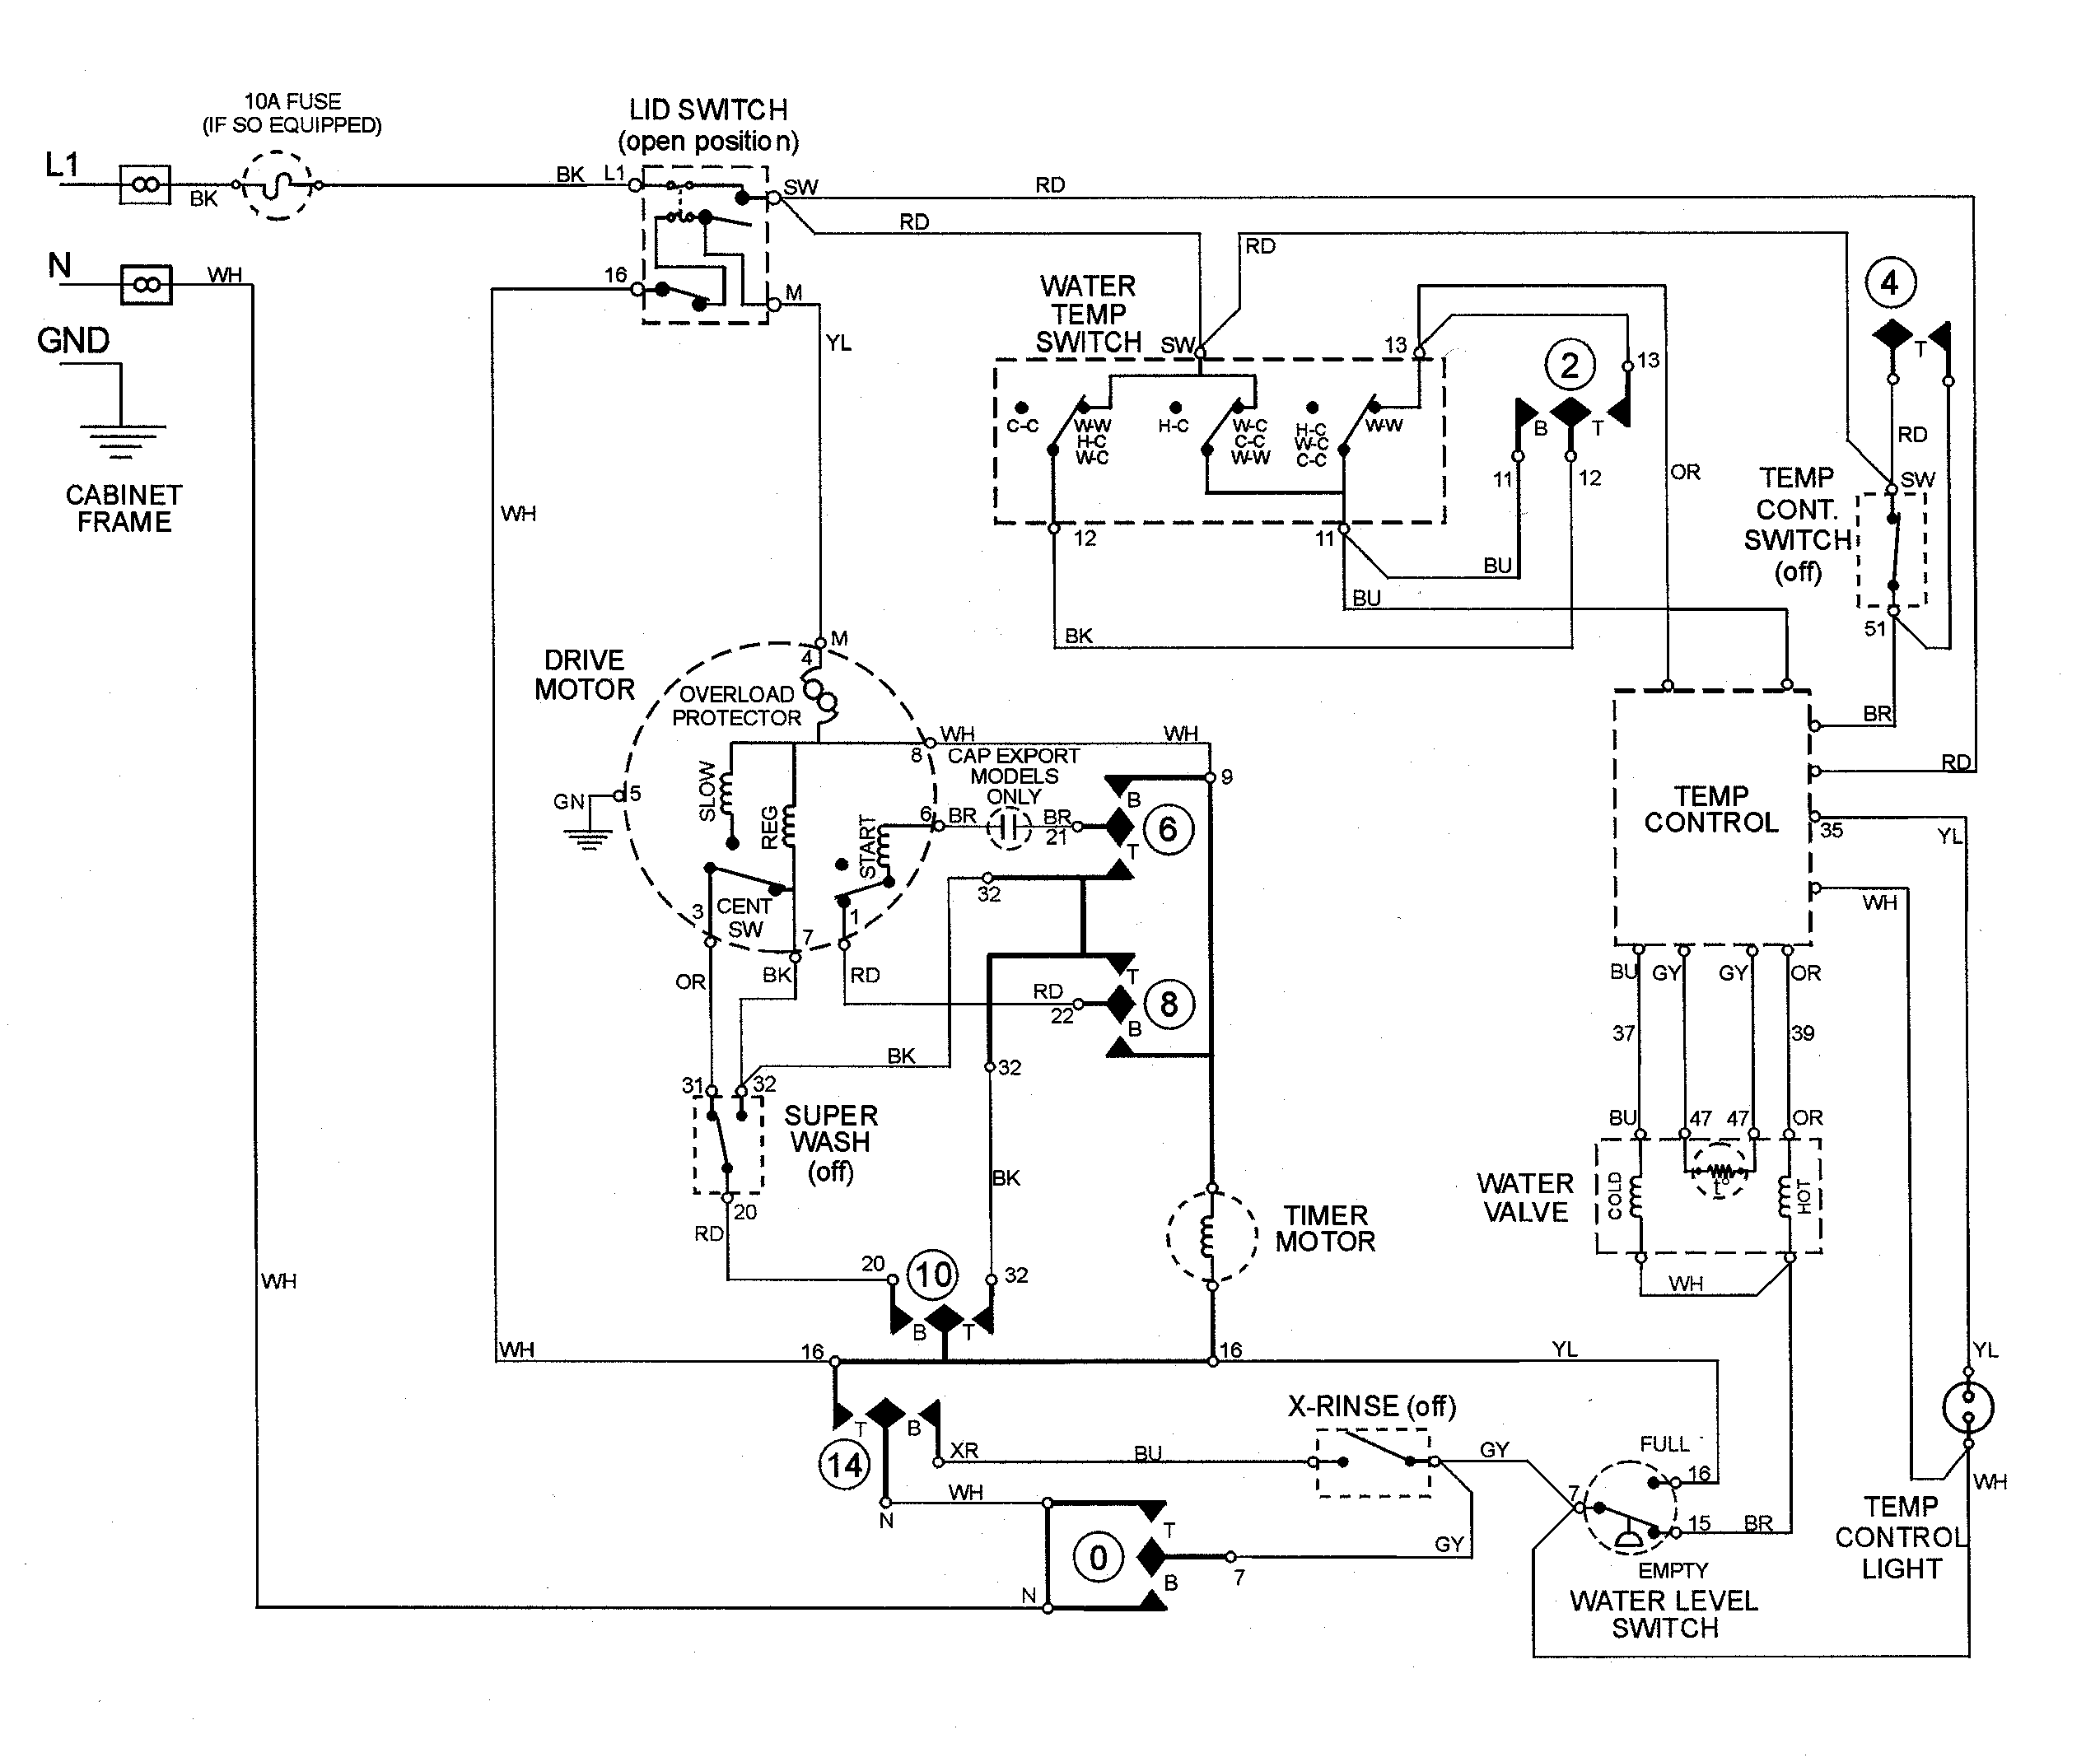 Hotpoint Washer Wiring Diagram | Wiring Schematic Diagram on